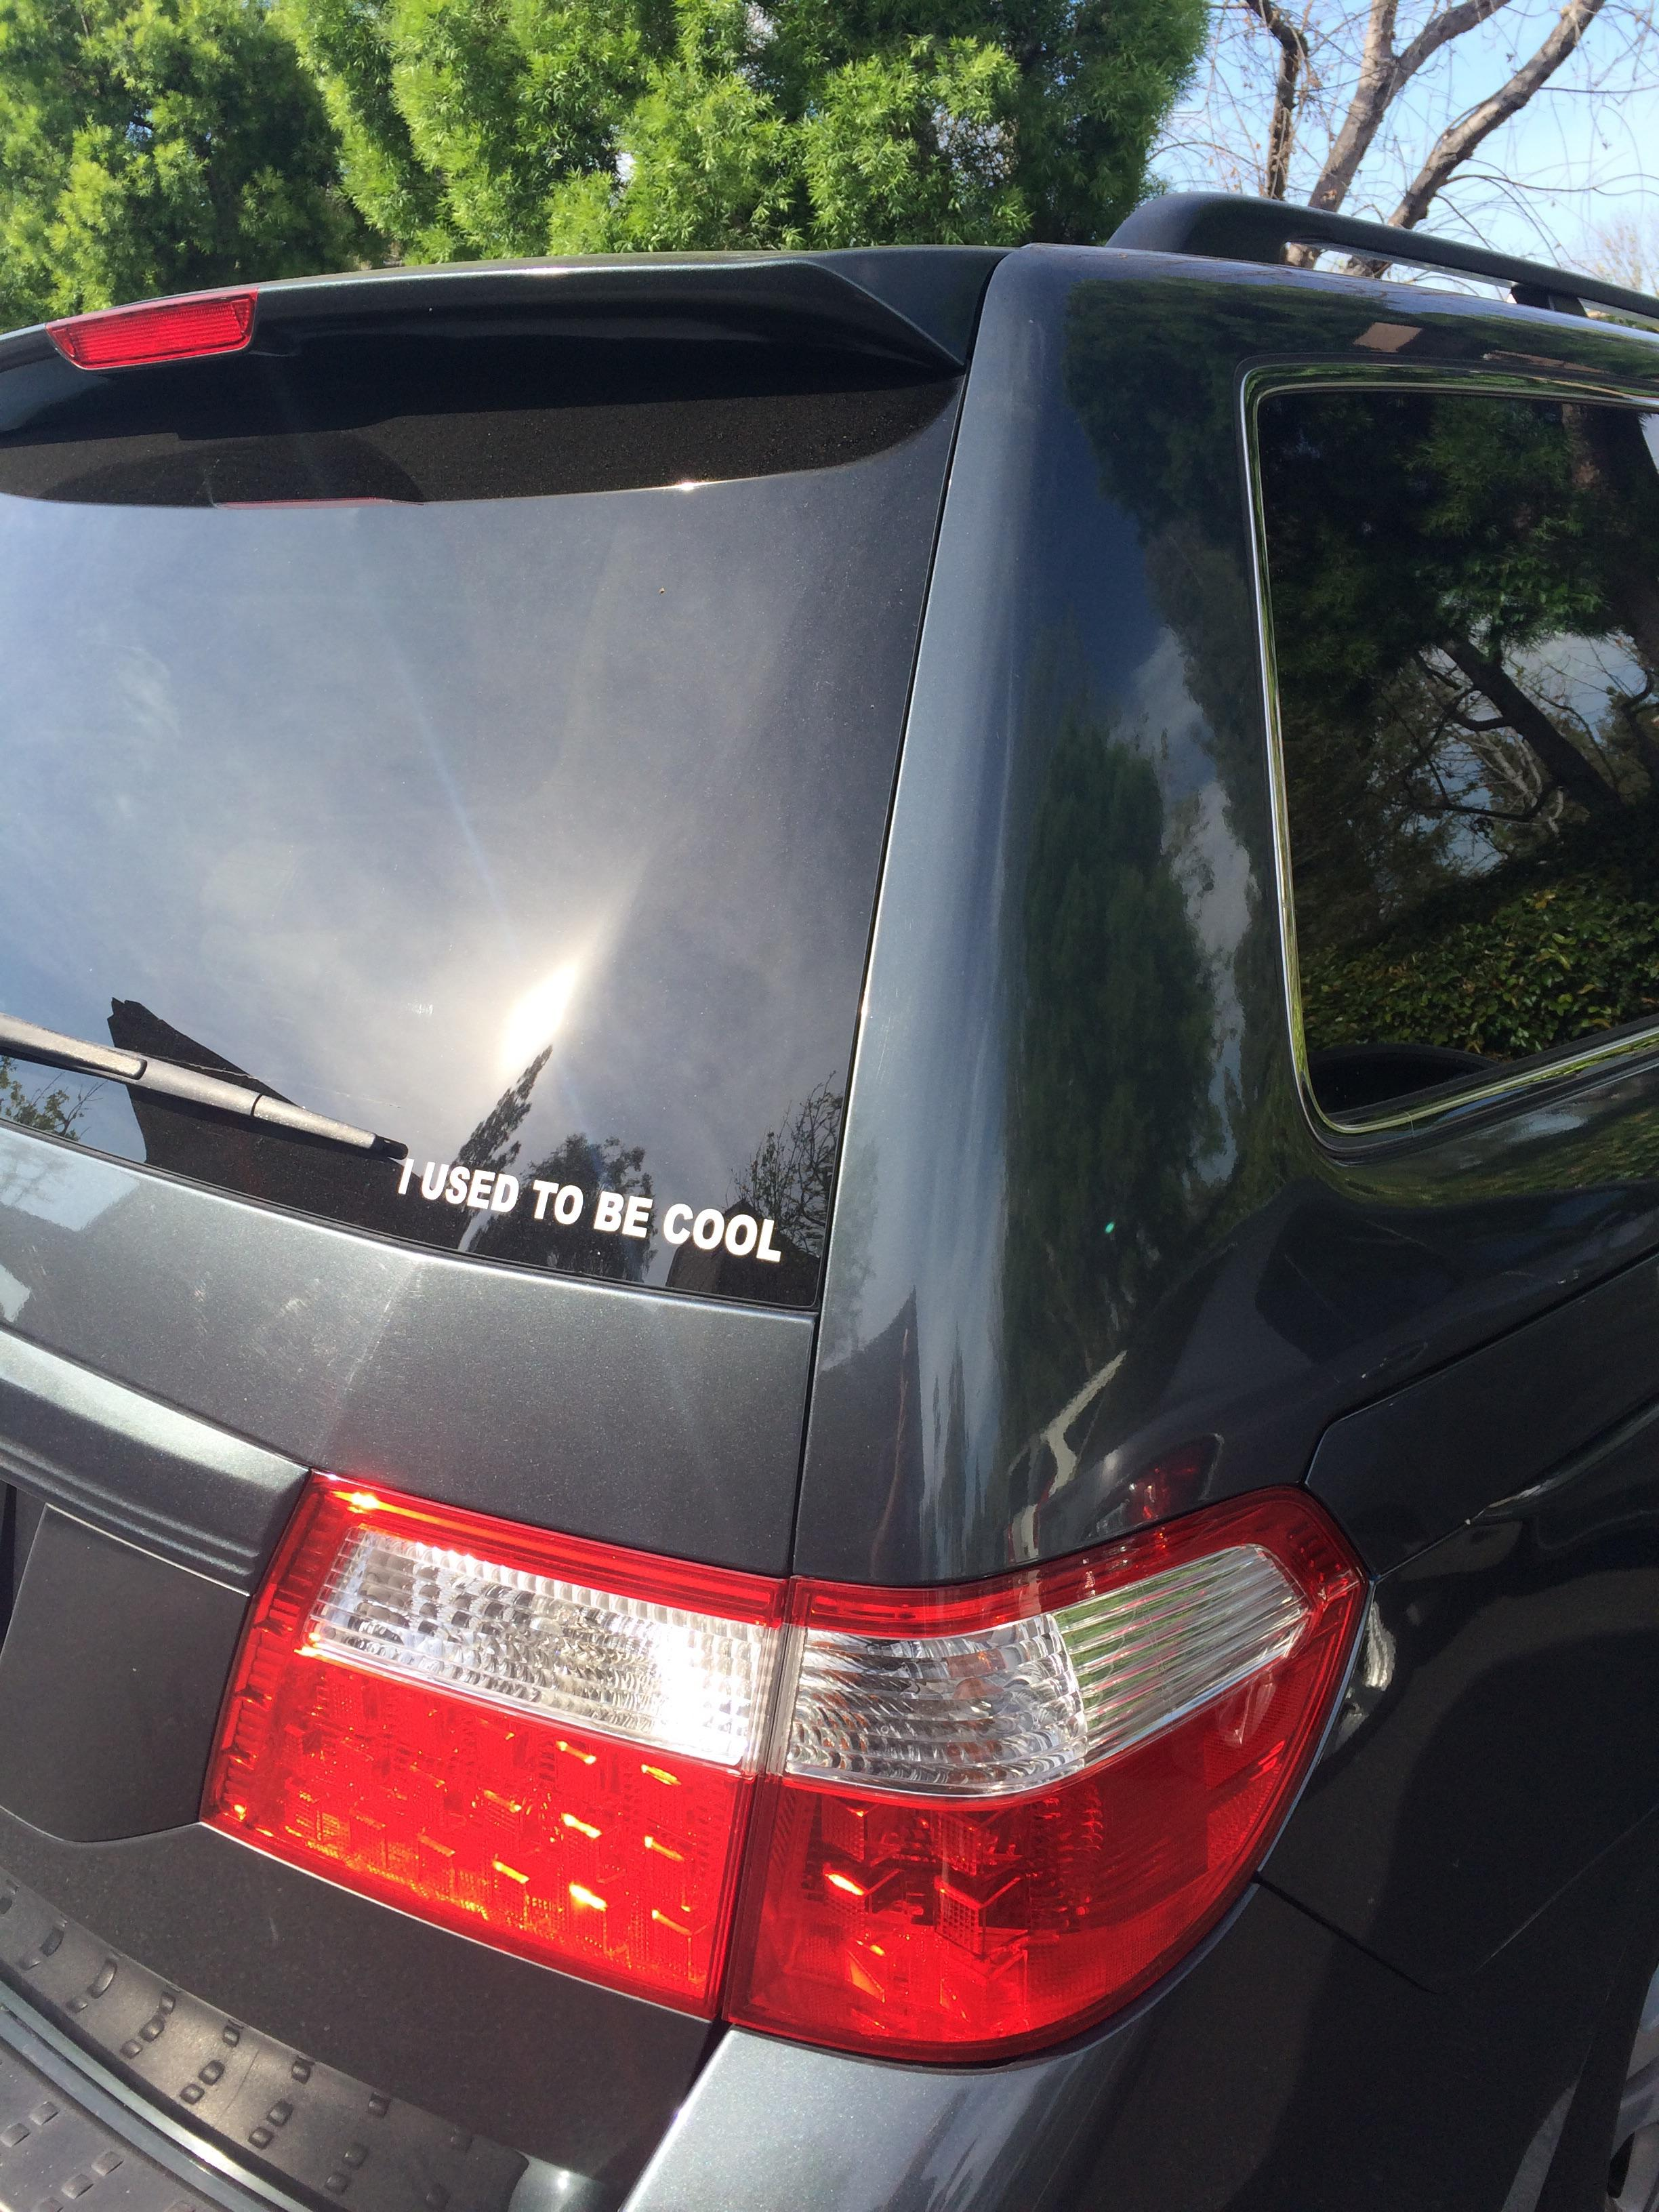 Minivan driver wants everyone to know they used to be cool.